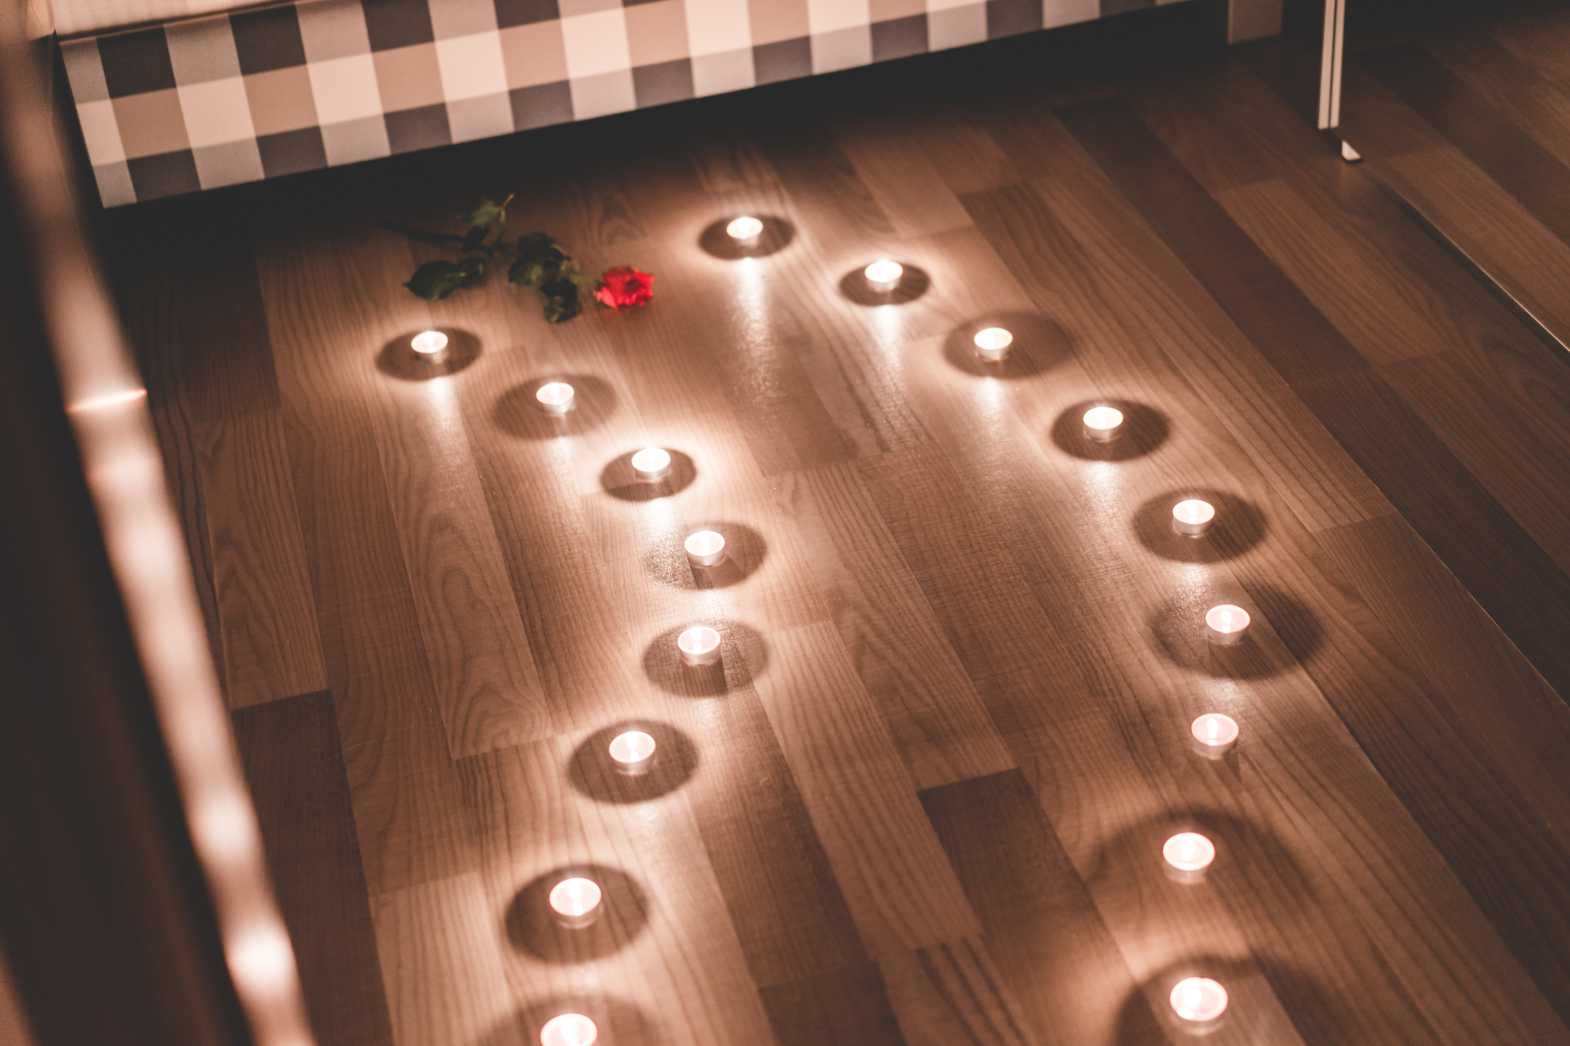 romantic candles as a pathway in a bedroom free stock photos picjumbo.com  - Valentýnské fotografie zdarma – picjumbo.com